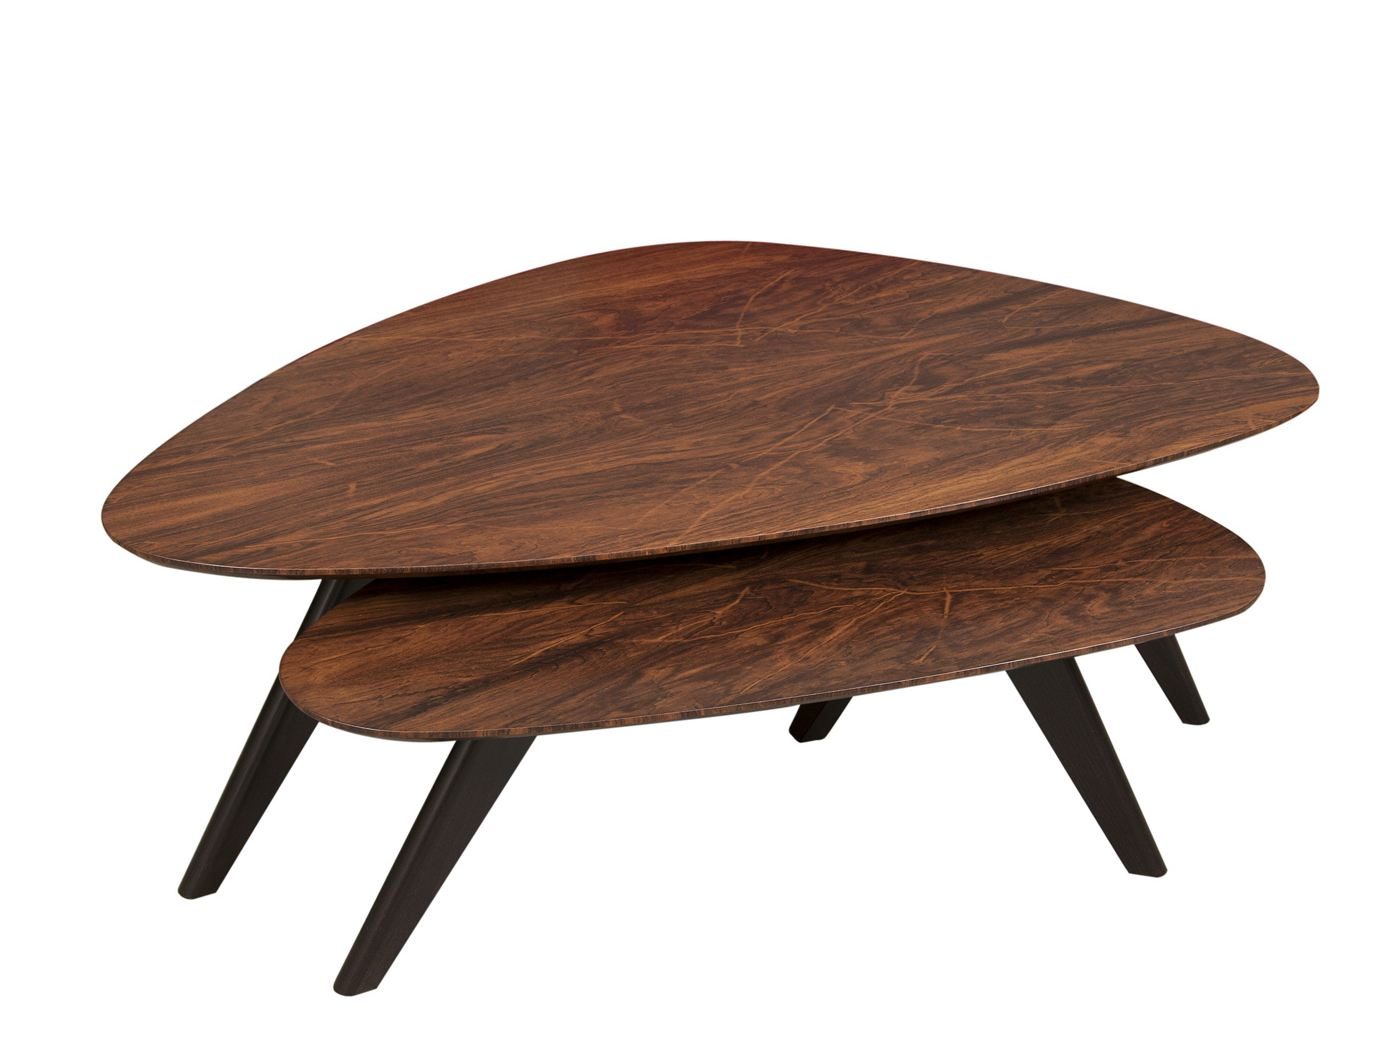 Triangular Wooden Coffee Table Jasper By Hamilton Conte Paris Design Fabian Pellegrinet Conte